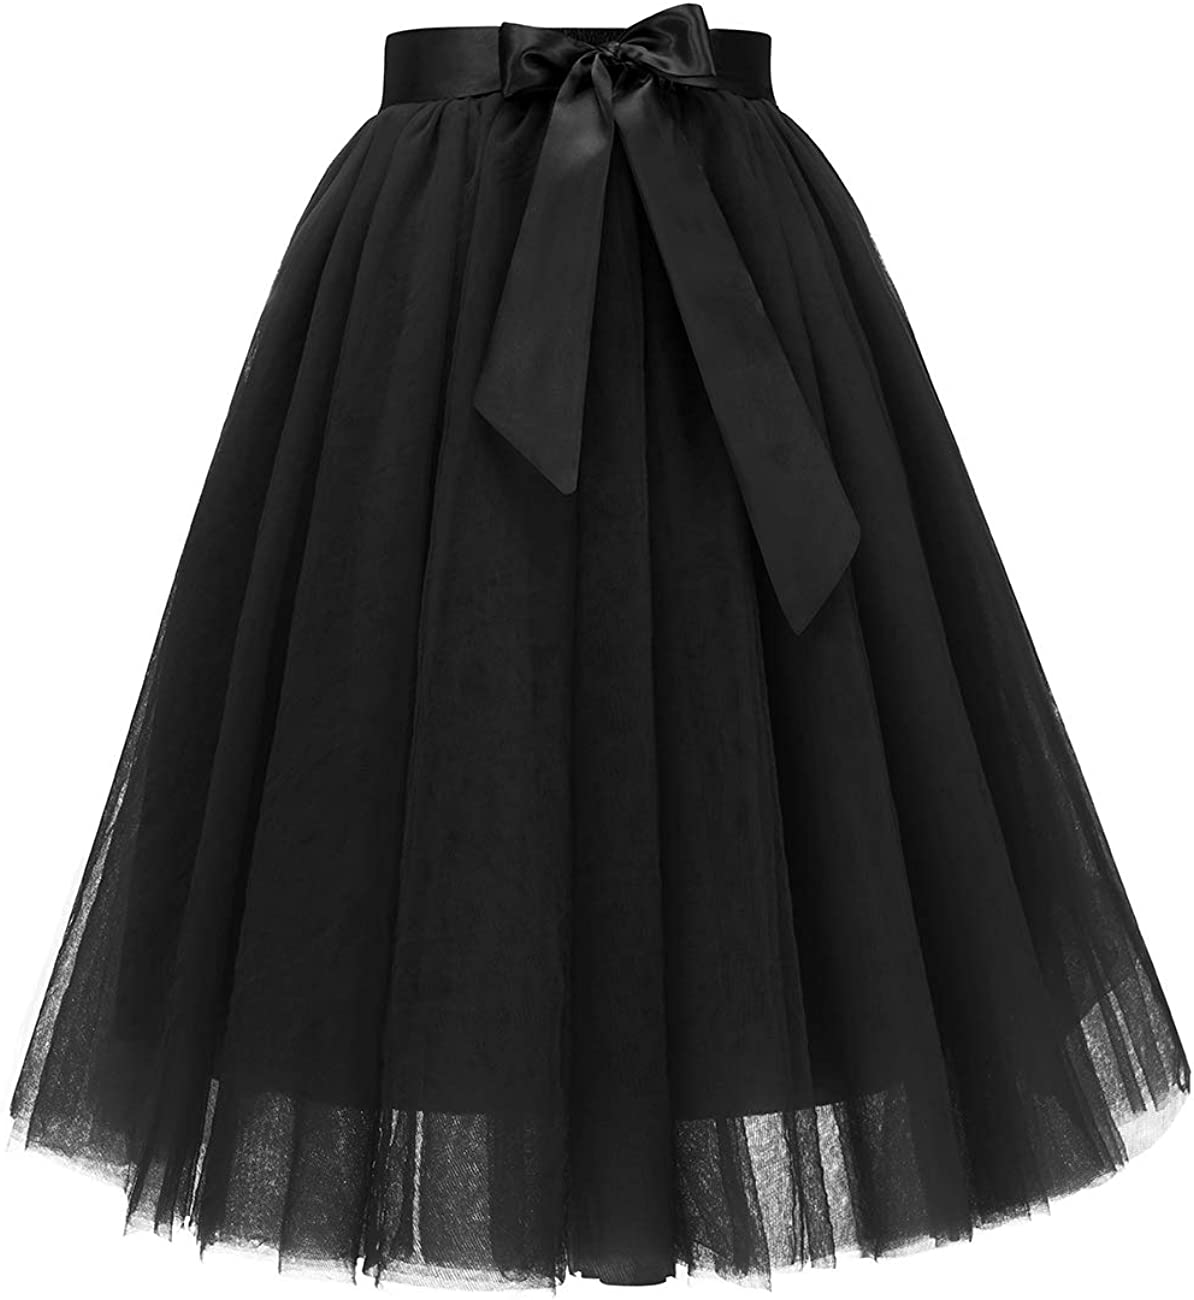 Bridesmay Women's Tulle Skirt Knee Length 6-Layered Wedding Party Homecoming Prom Dress